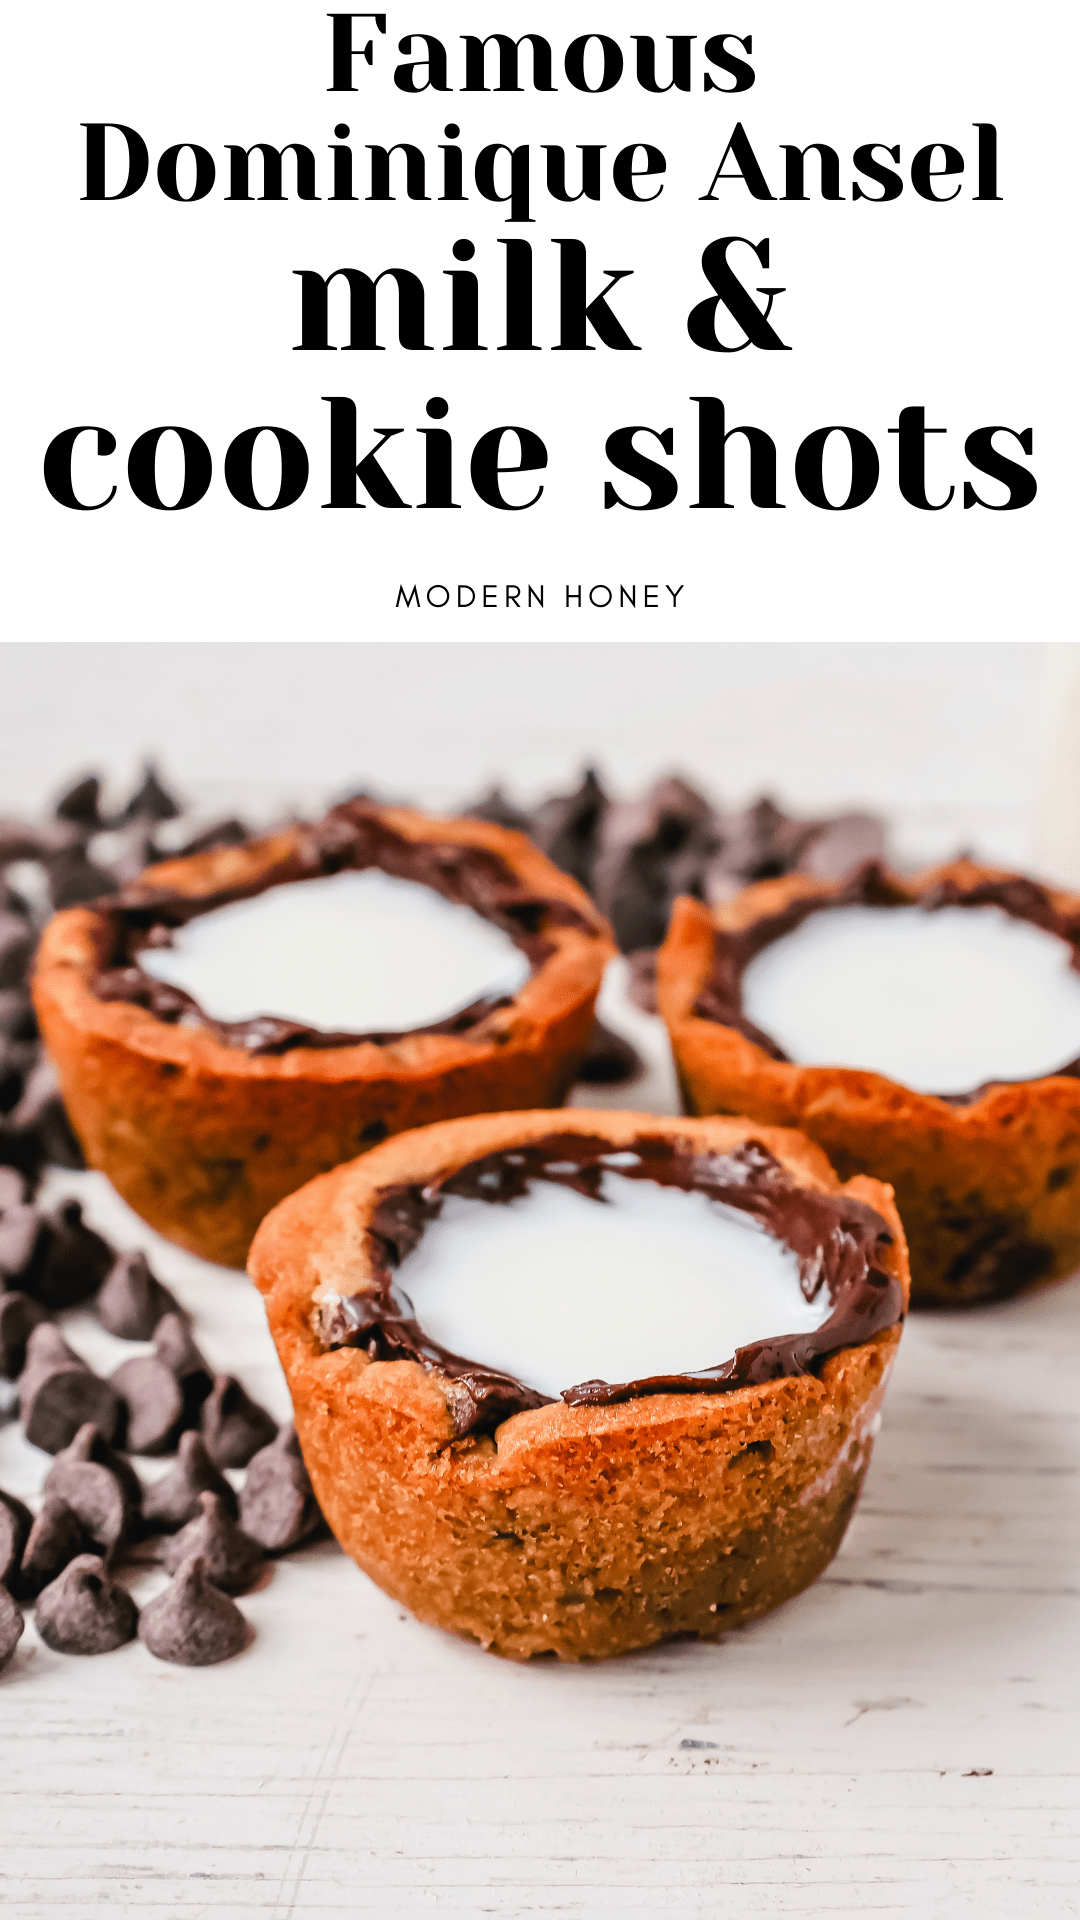 Milk and Cookie Shots The famous Milk and Cookie Shots were made famous at New York City Dominique Ansel Bakery. This soft chocolate chip cookie is shaped into a shot, baked until warm and gooey, lined with chocolate, and served with milk inside. If you love cookies and milk, this is the dessert for you!